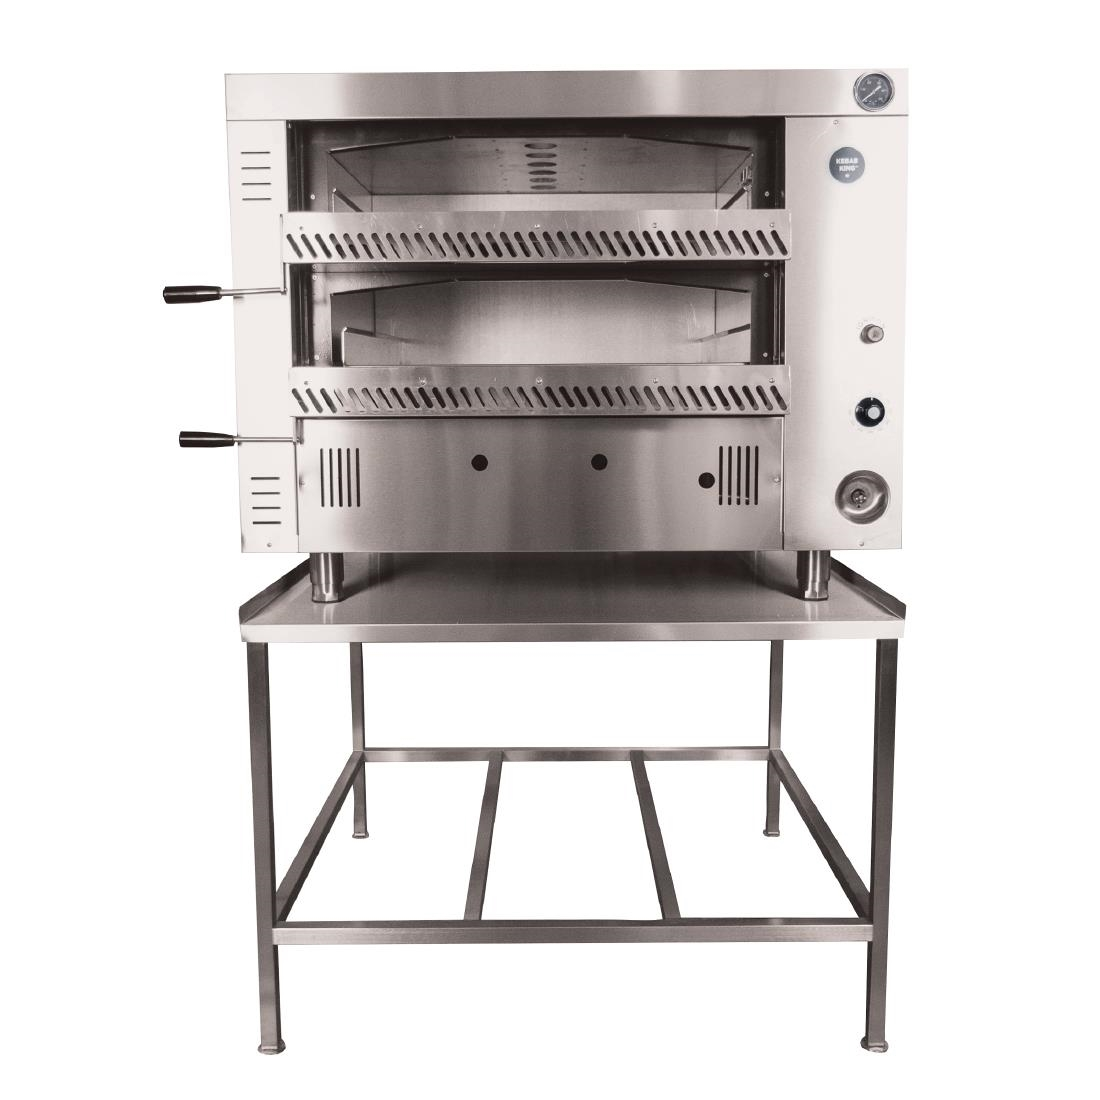 Image of Kebab King 4 Oven Stand